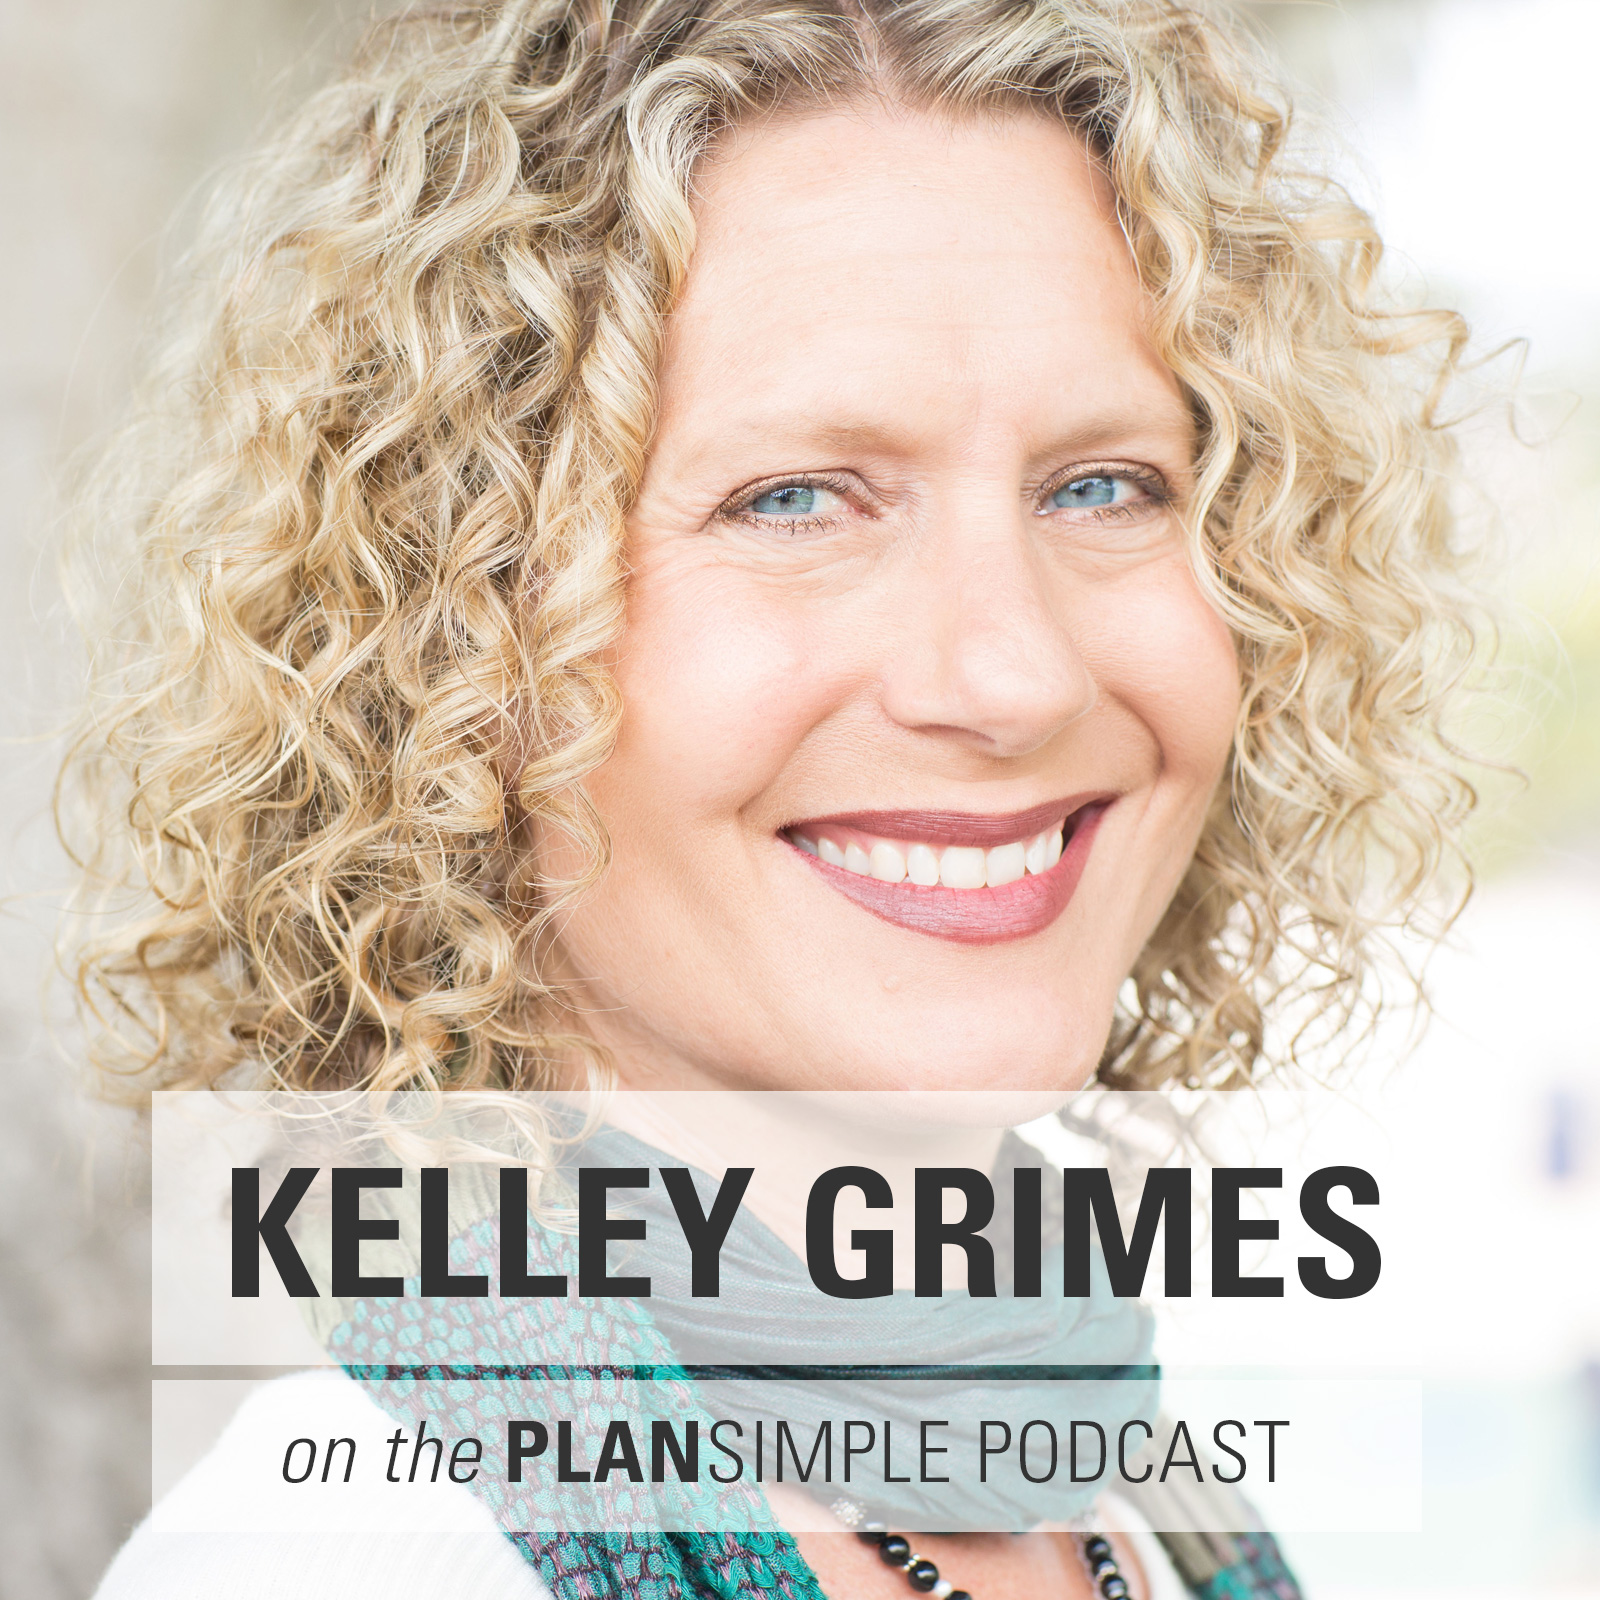 Kelley-Grimes-plan-simple-podcast-mia-moran